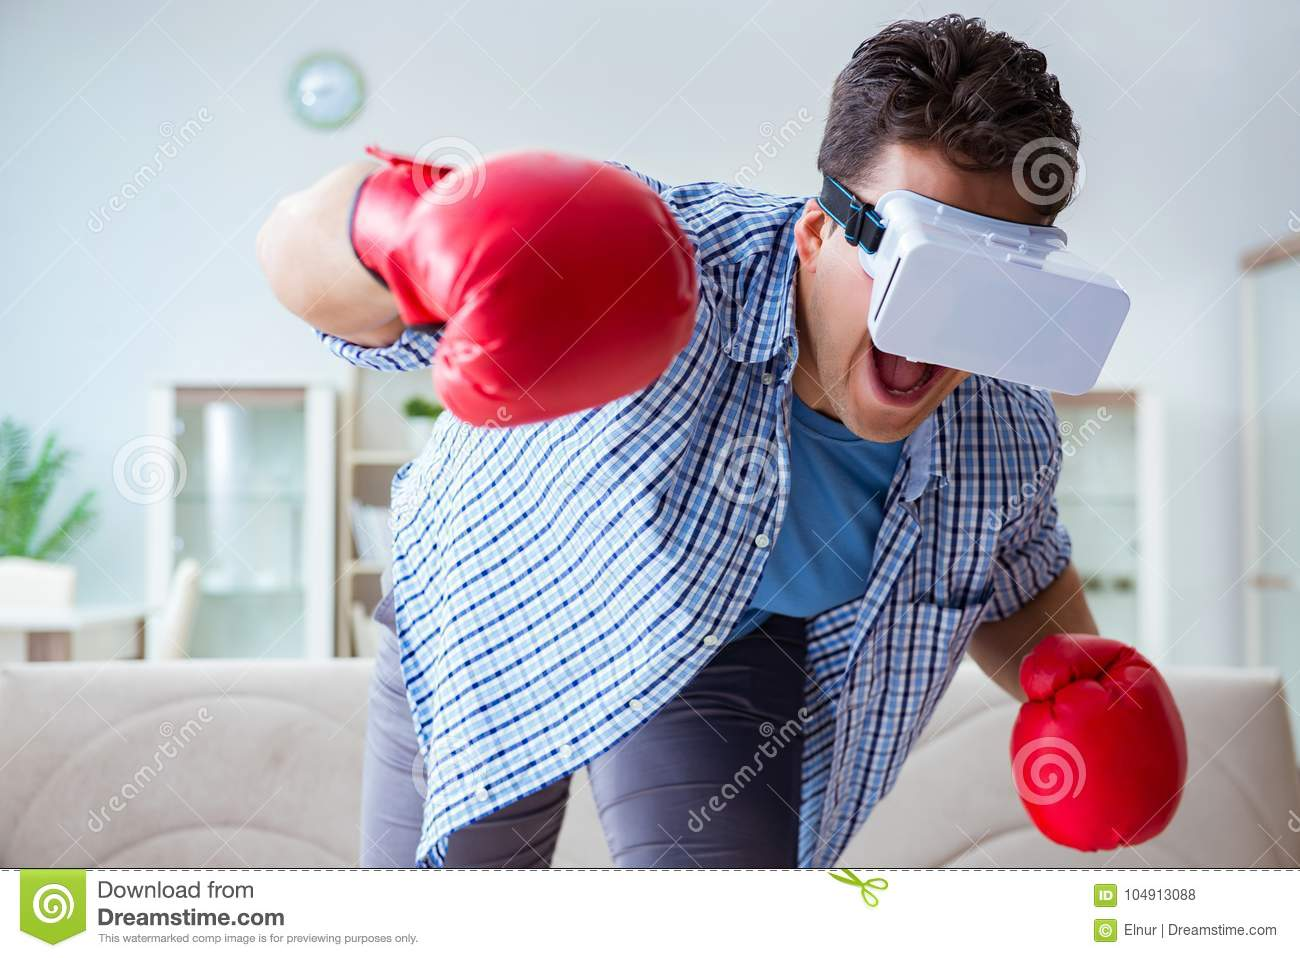 6272f39bfa88 The Man Wearing Virtual Reality Vr Glasses Playing Boxing Game Stock ...